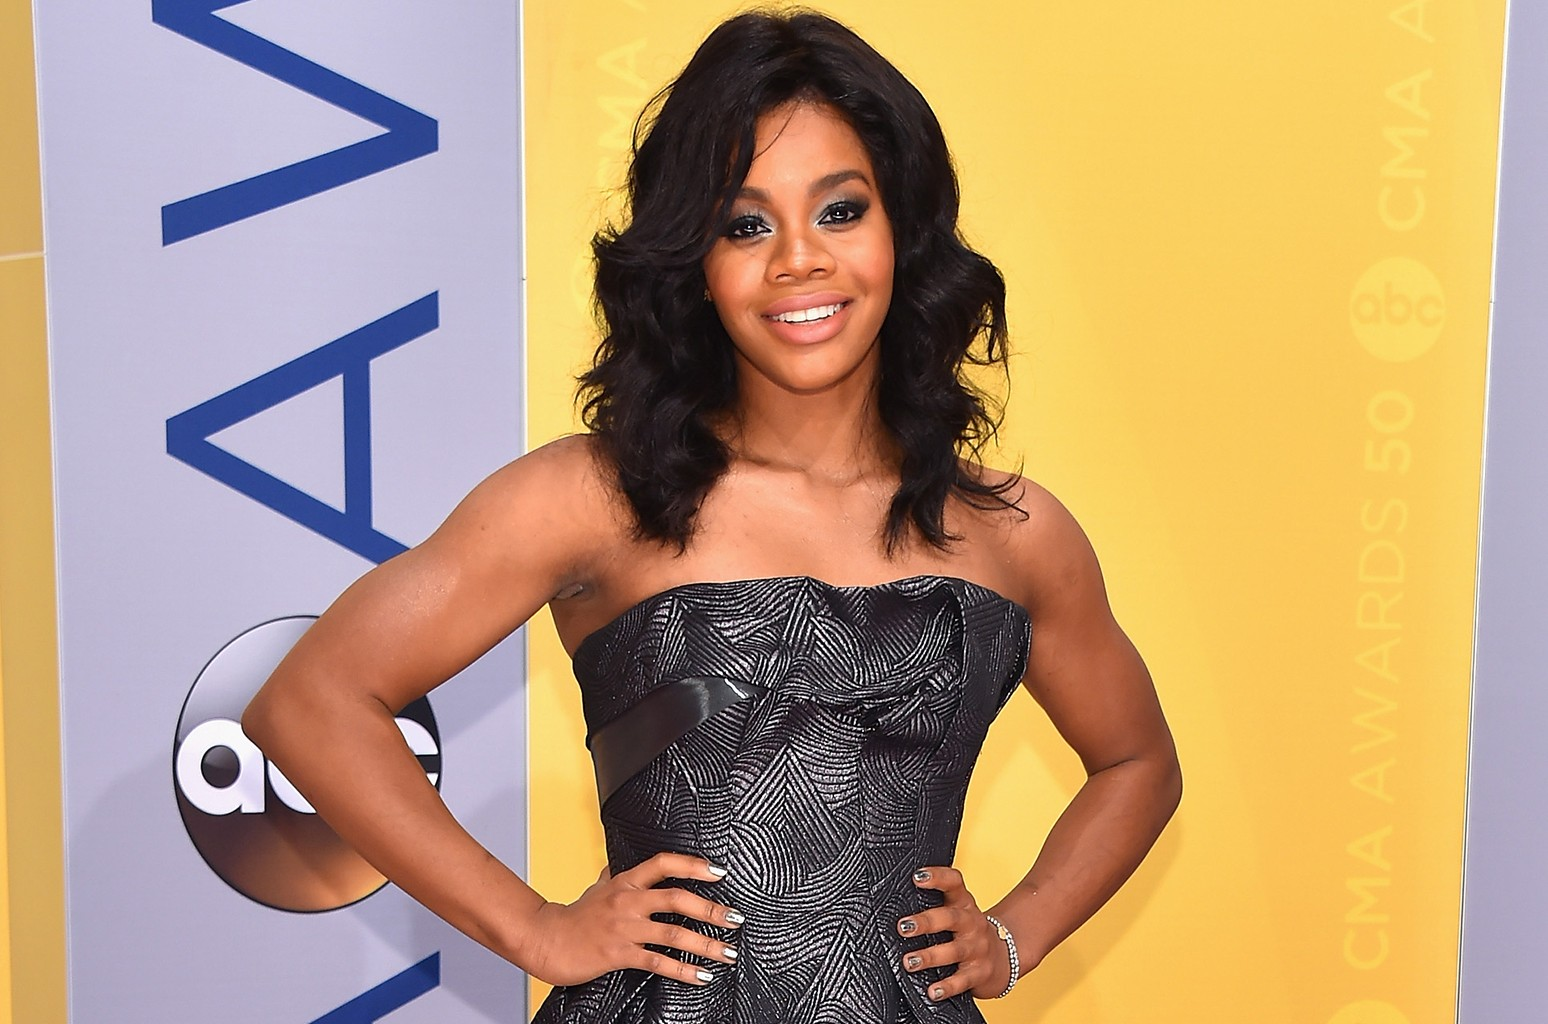 Gabby Douglas attends the 50th annual CMA Awards at the Bridgestone Arena on November 2, 2016 in Nashville, Tennessee.  (Photo by Michael Loccisano/Getty Images)